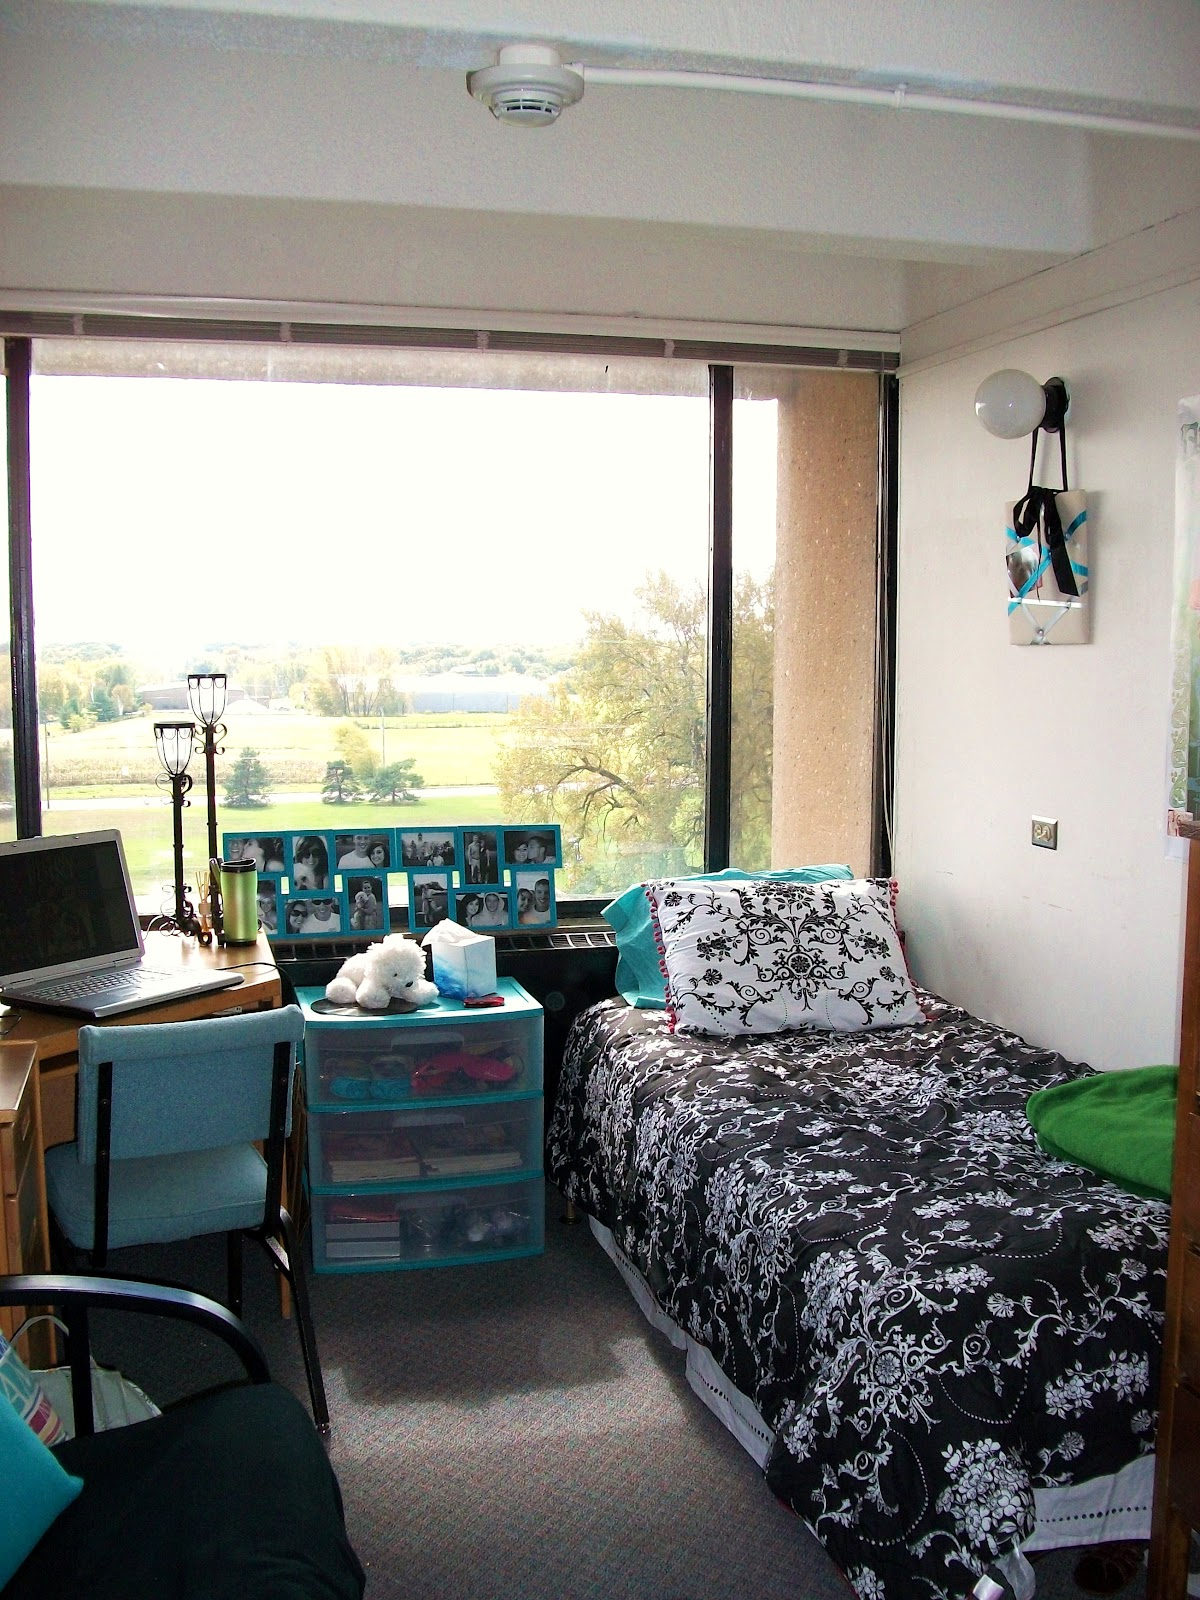 Single Room Dorm Picture